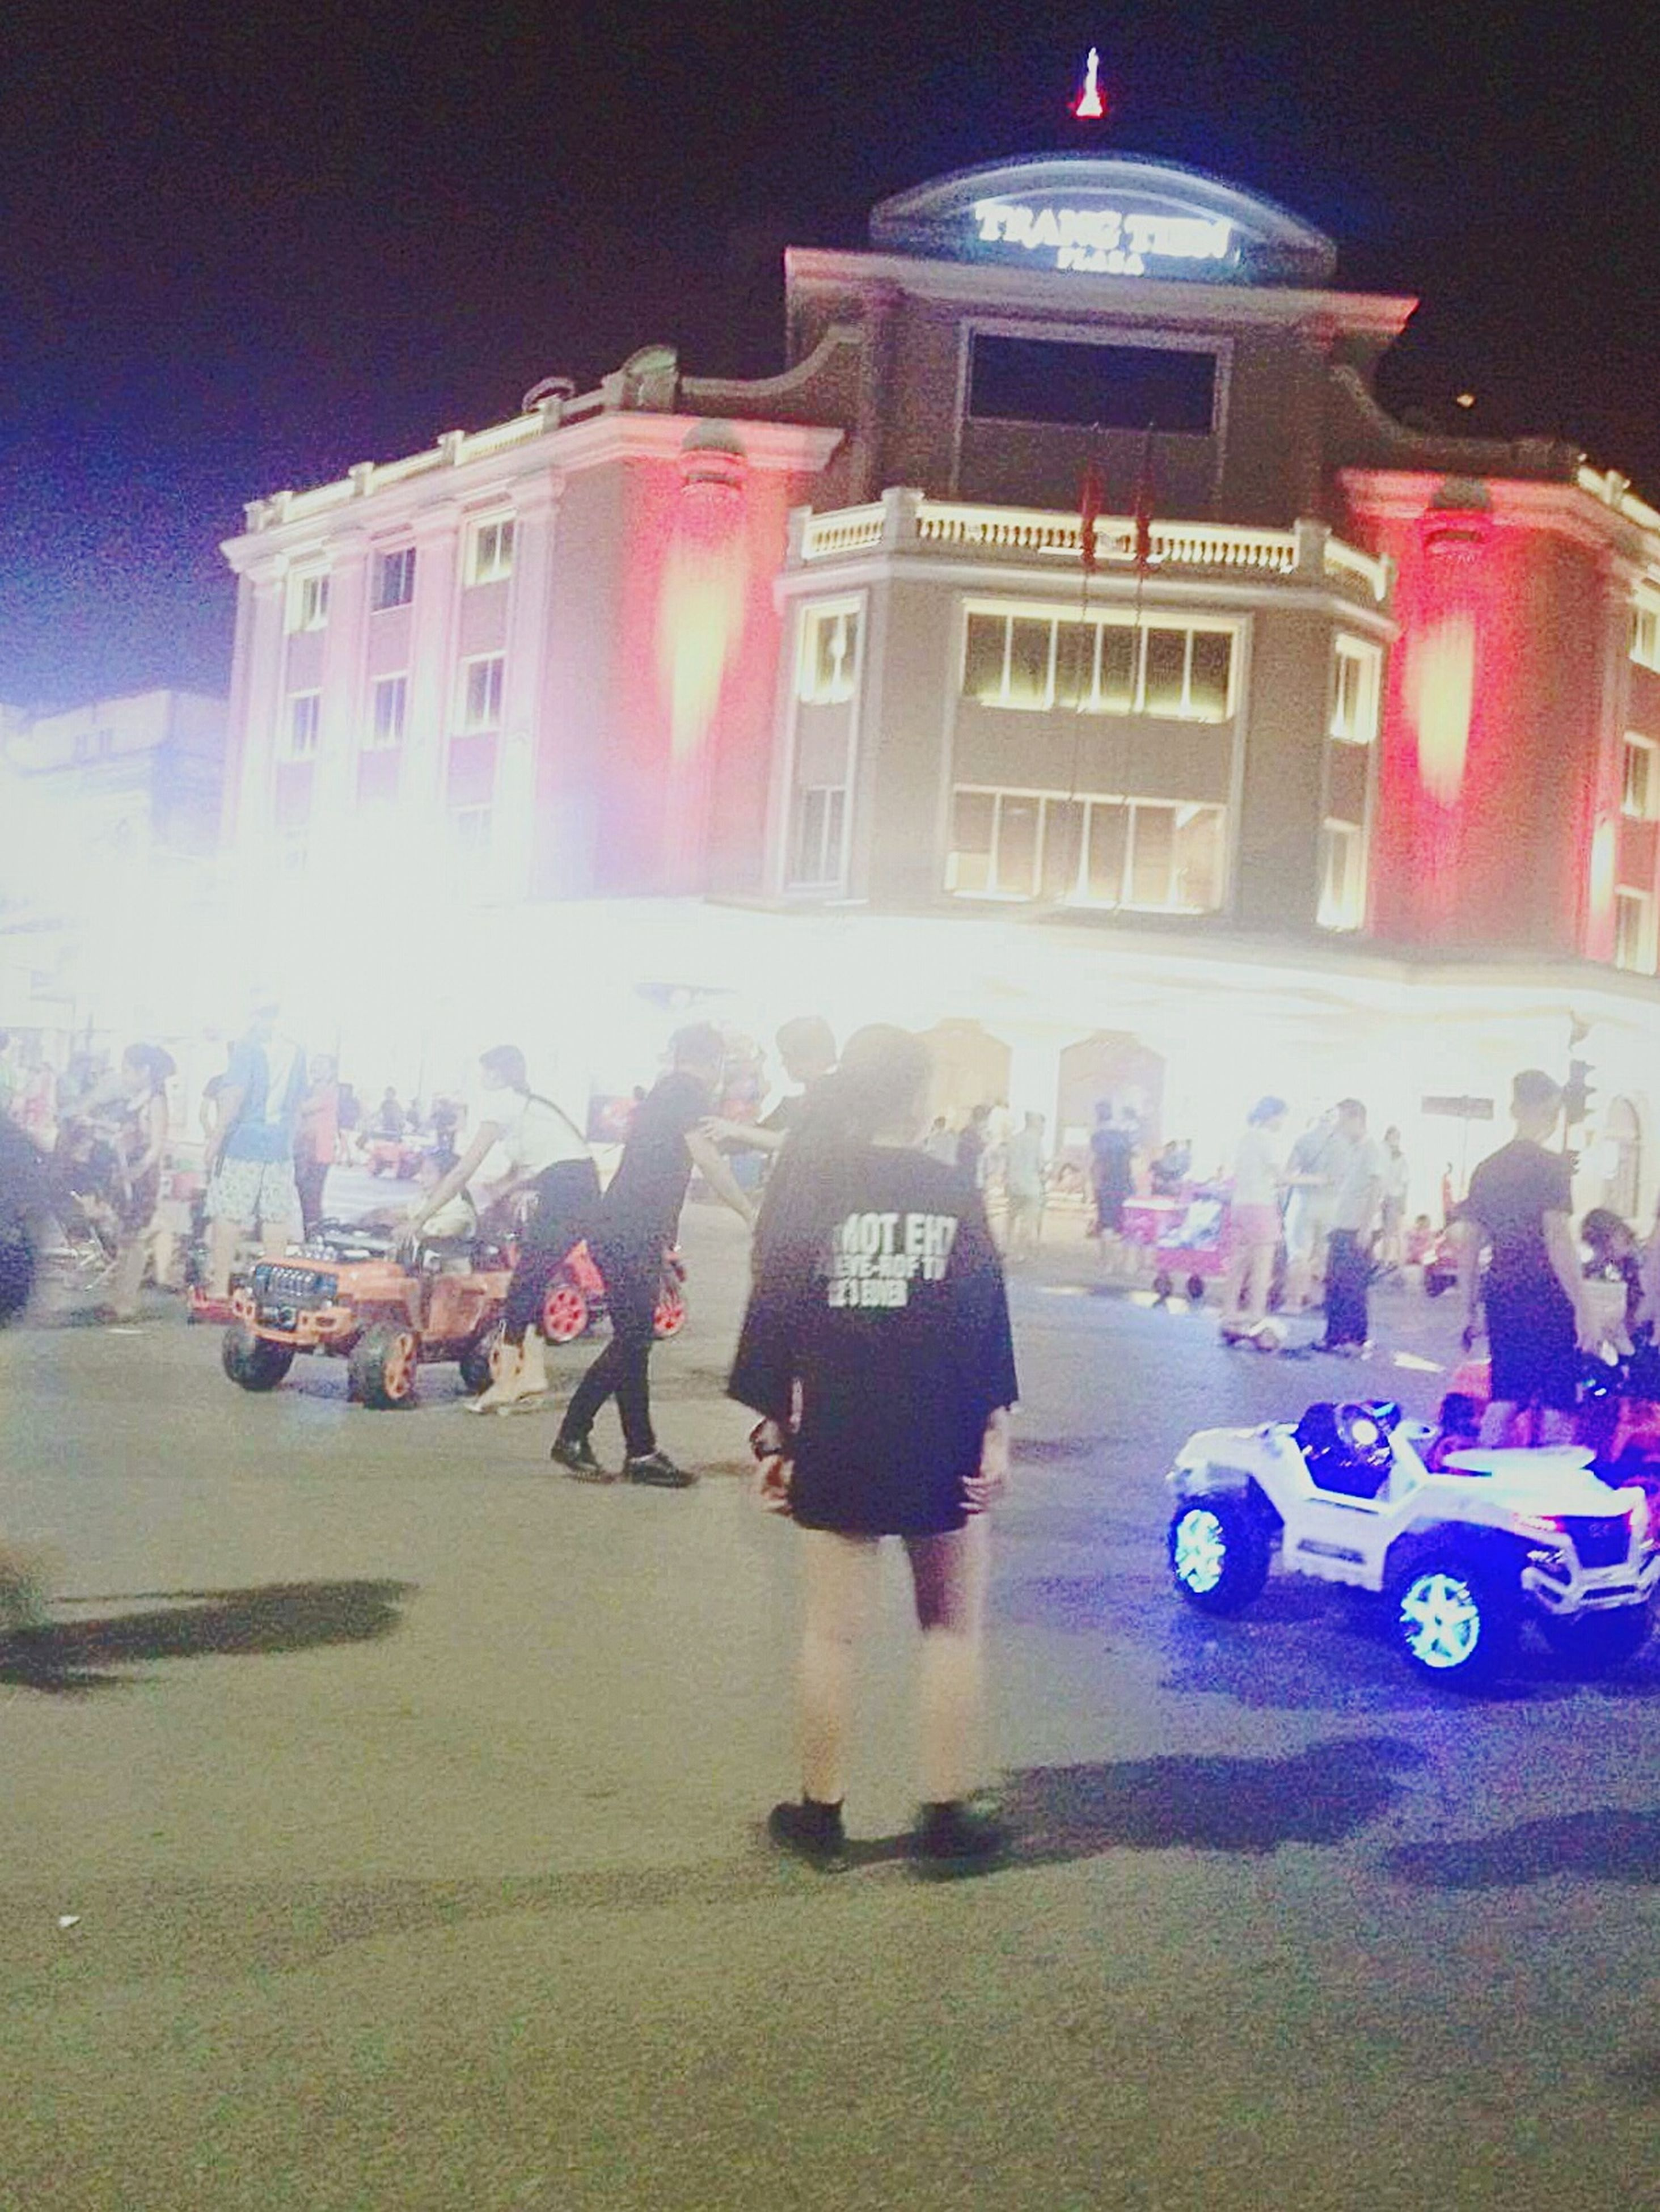 building exterior, built structure, architecture, real people, large group of people, illuminated, night, land vehicle, street, car, lifestyles, city, outdoors, women, men, crowd, sky, people